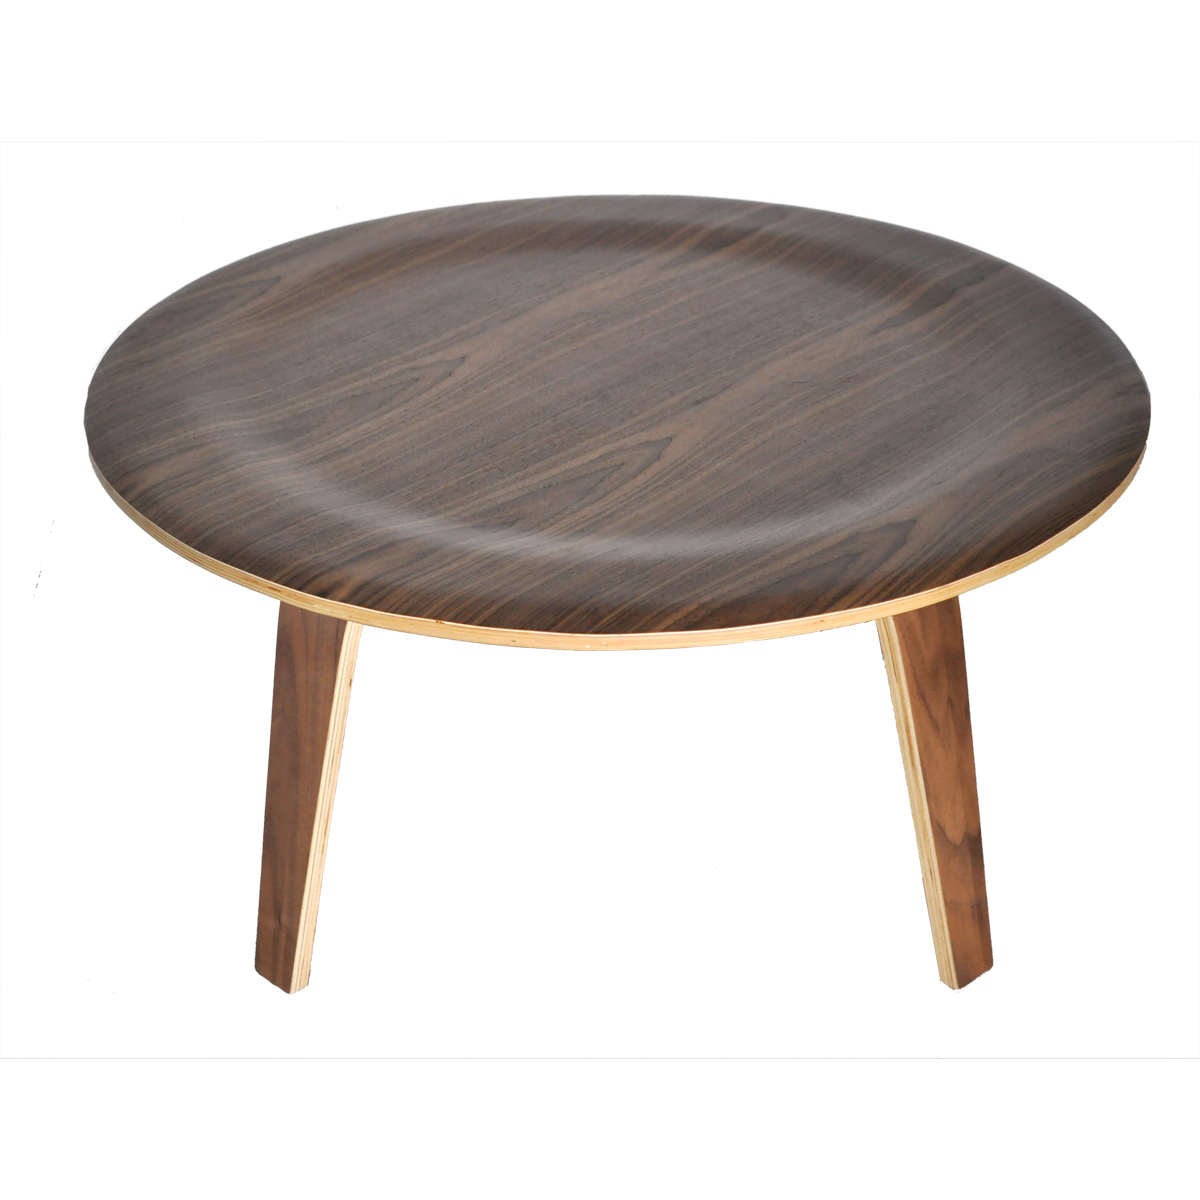 Eames Coffee Table 100 Eames Molded Plywood Coffee Table Eames Rectangular Cof 28 Side Coffee